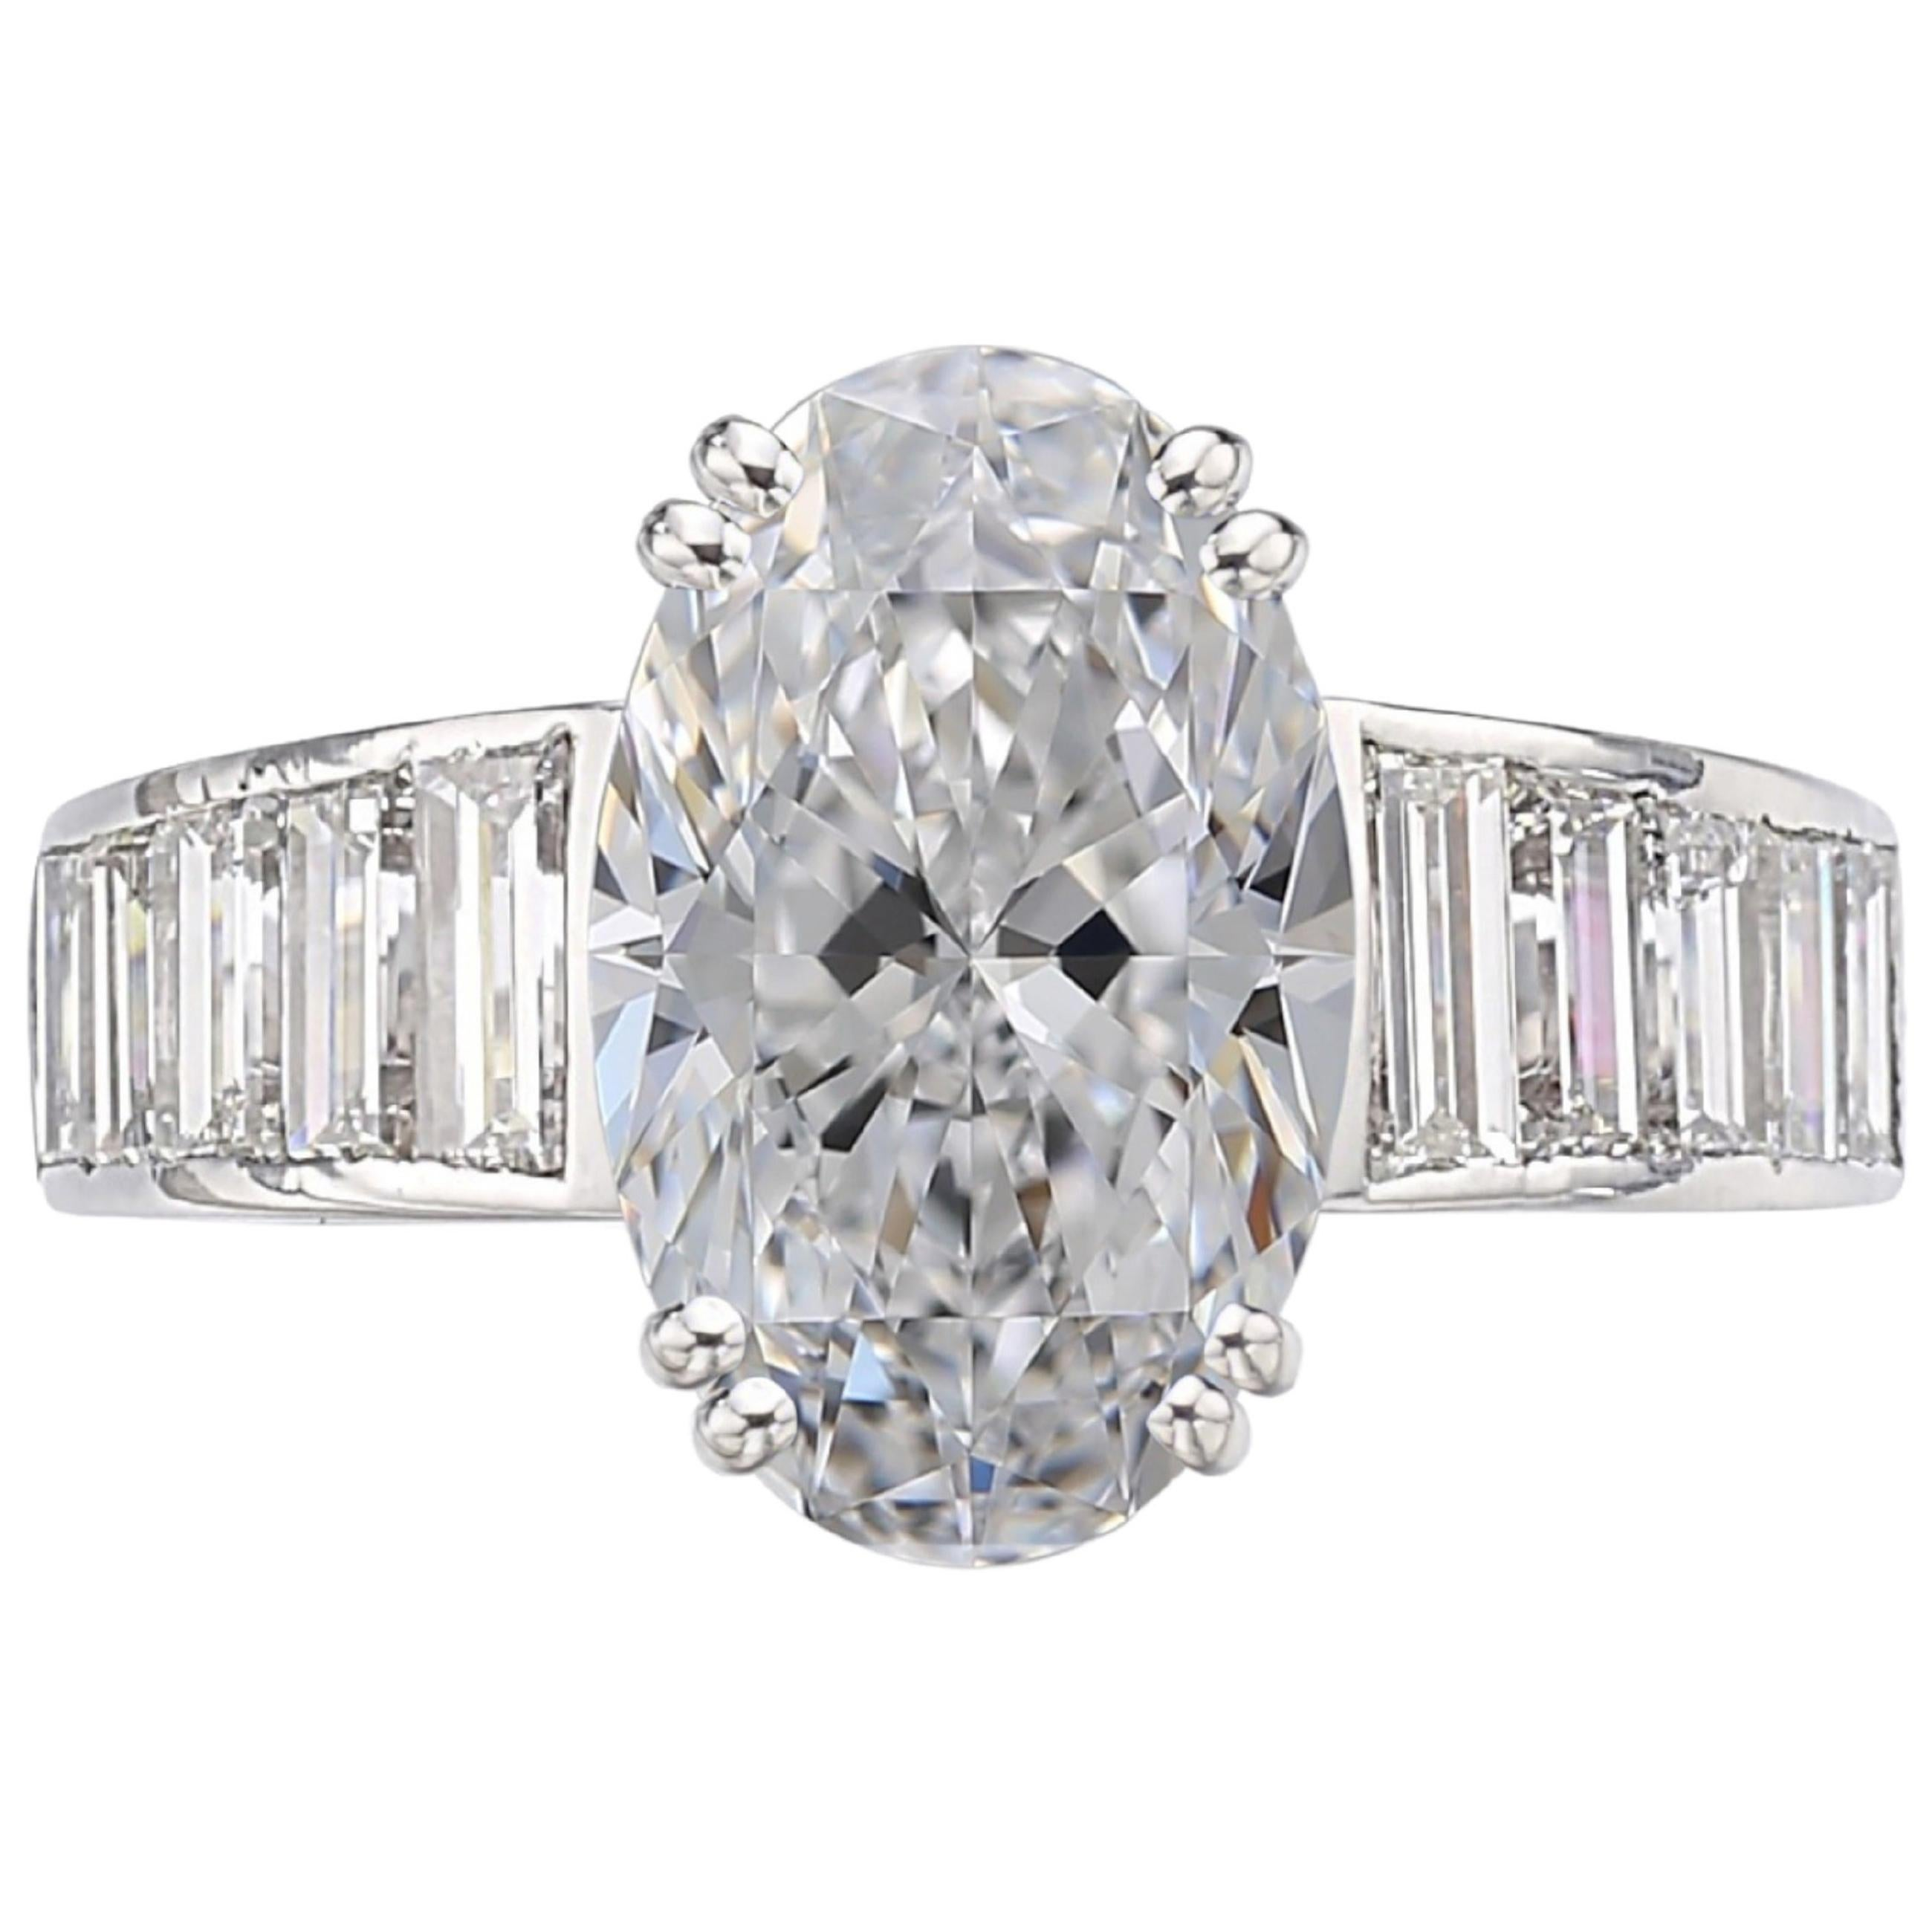 GIA Certified 3 Carat Oval Diamond Solitaire Platinum Ring